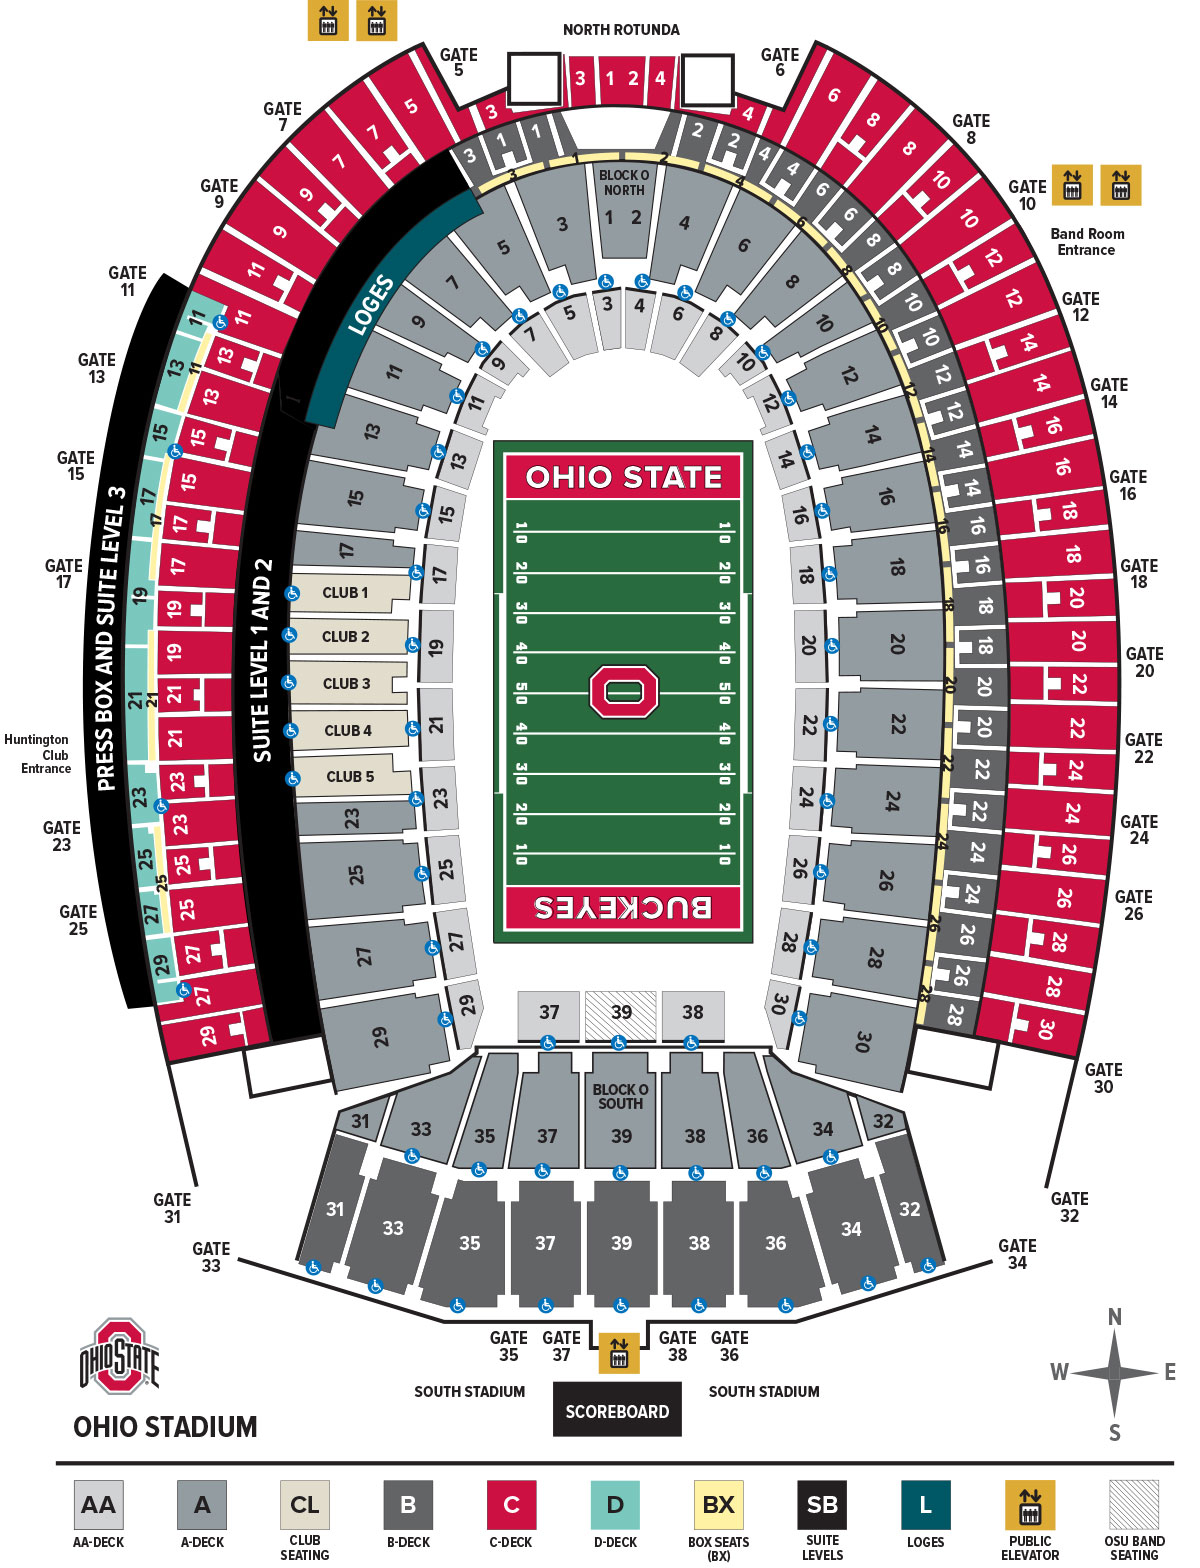 Ohio Stadium Seating Chart – Ohio State Buckeyes